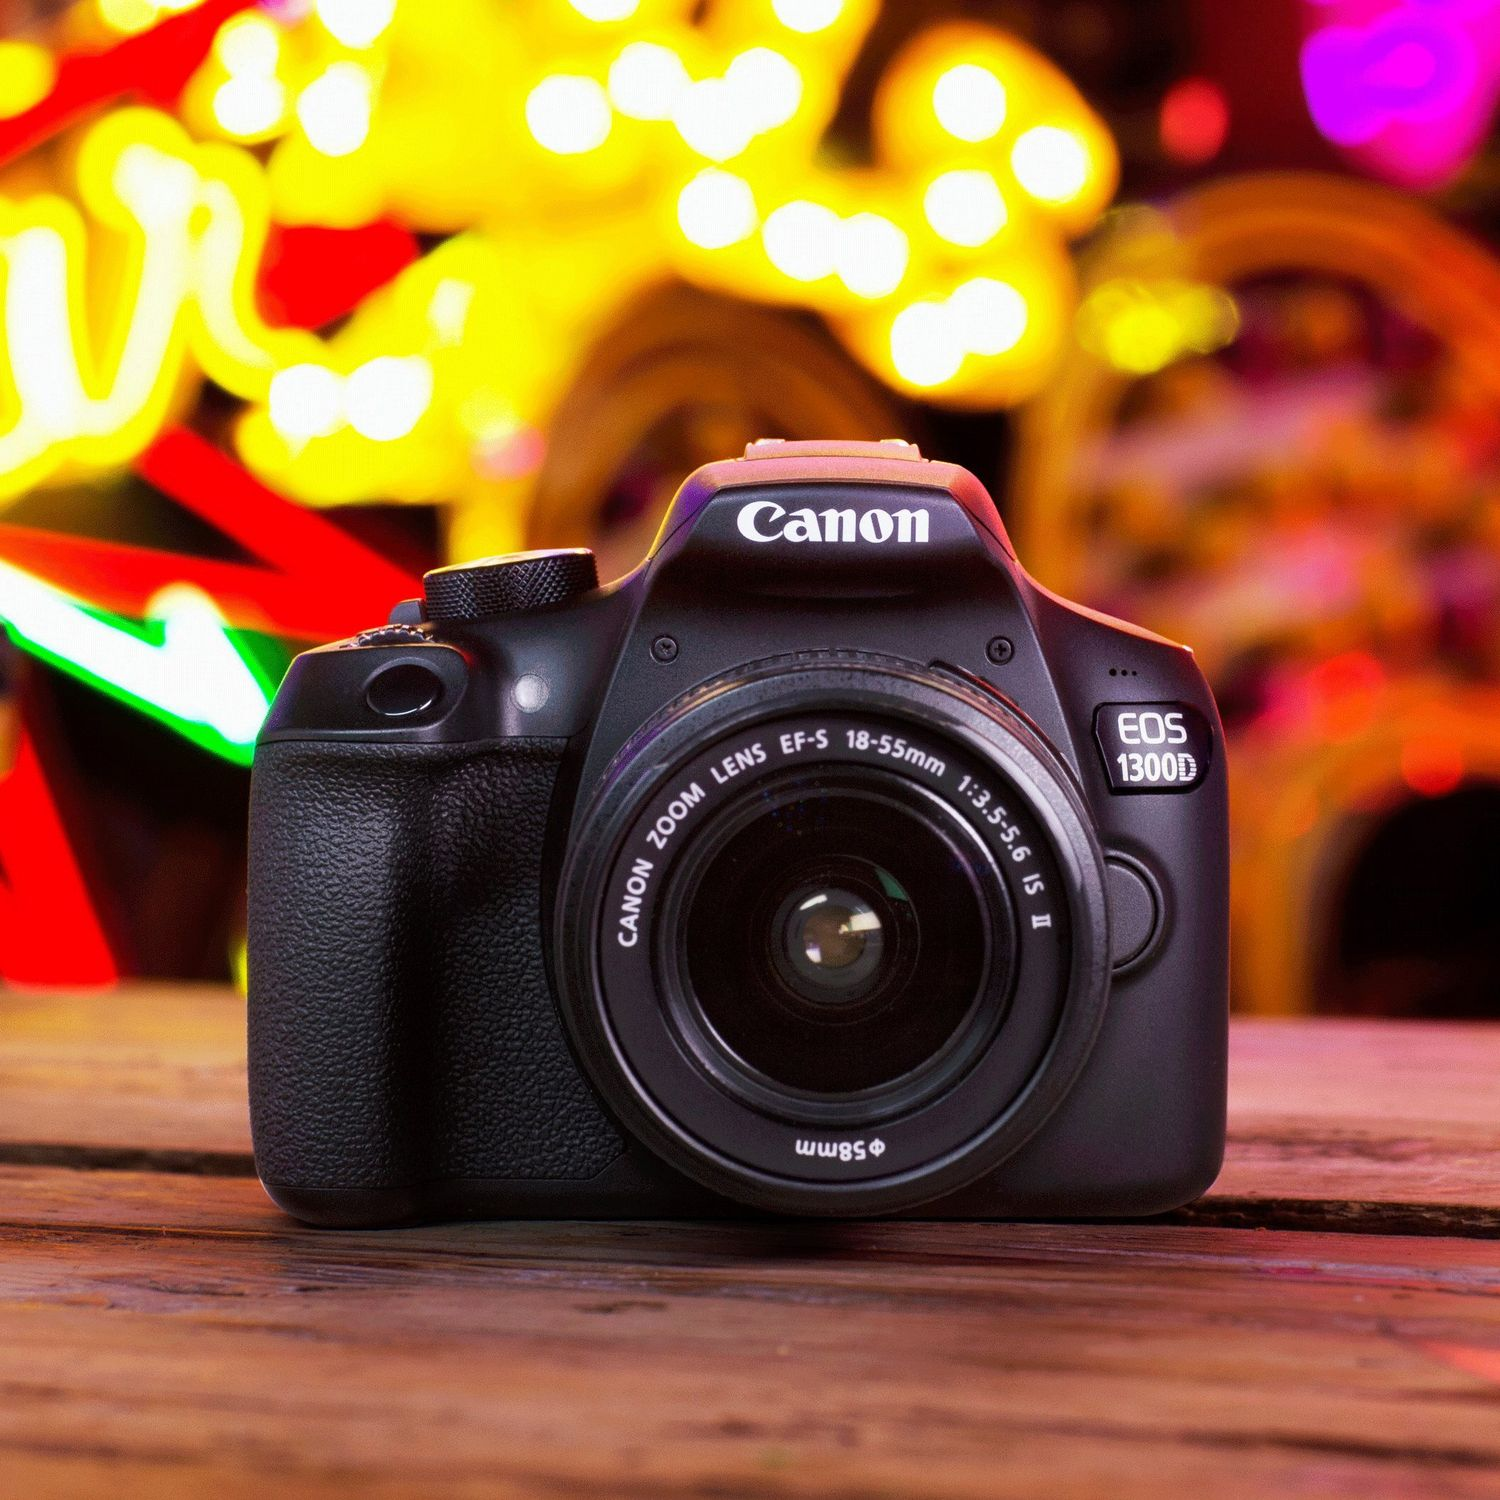 Buy Canon EOS 1300D + 18-55mm IS II Lens in Entry Level DSLR Cameras